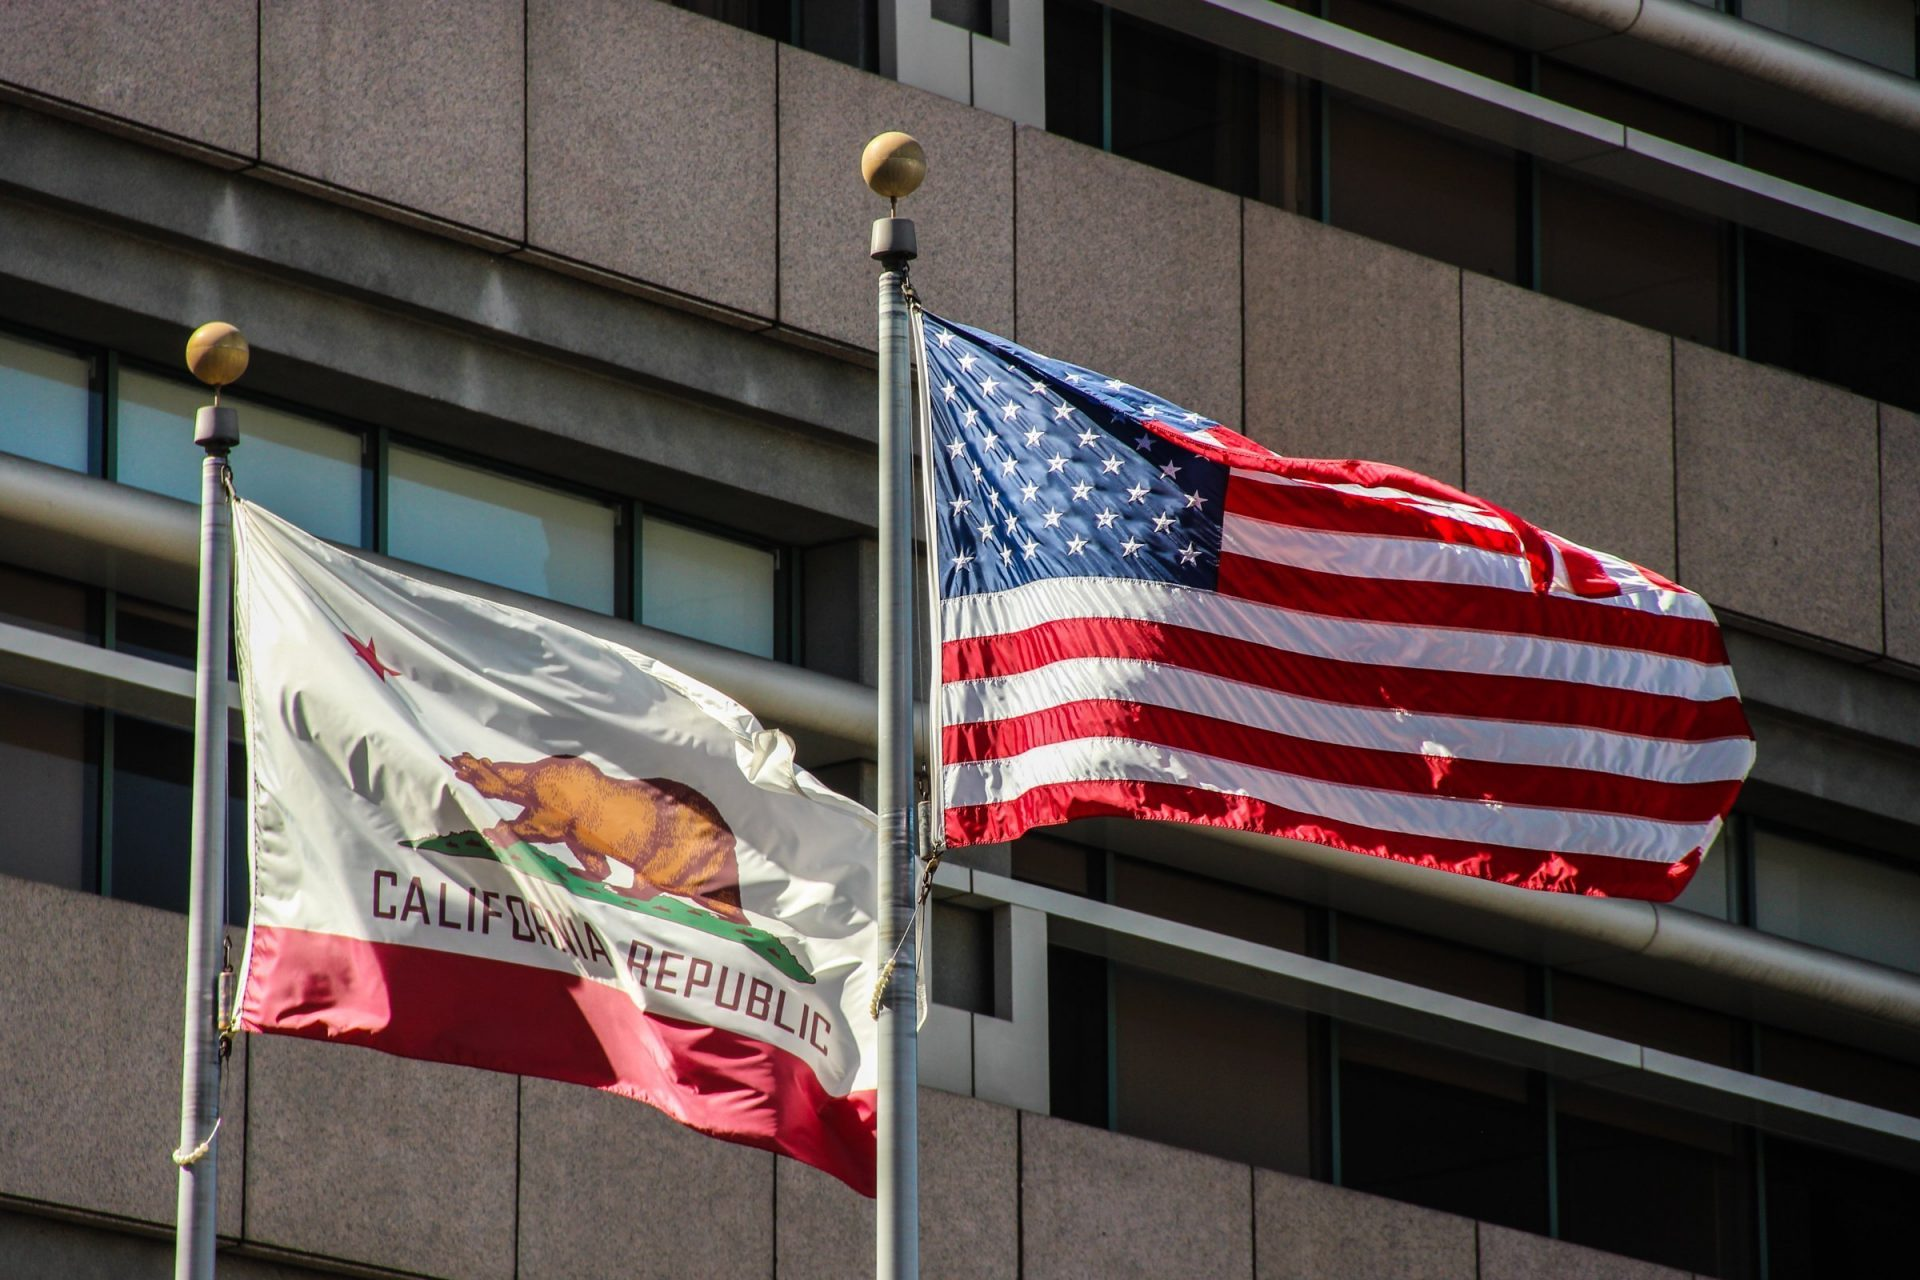 American And California State Flags On Poles